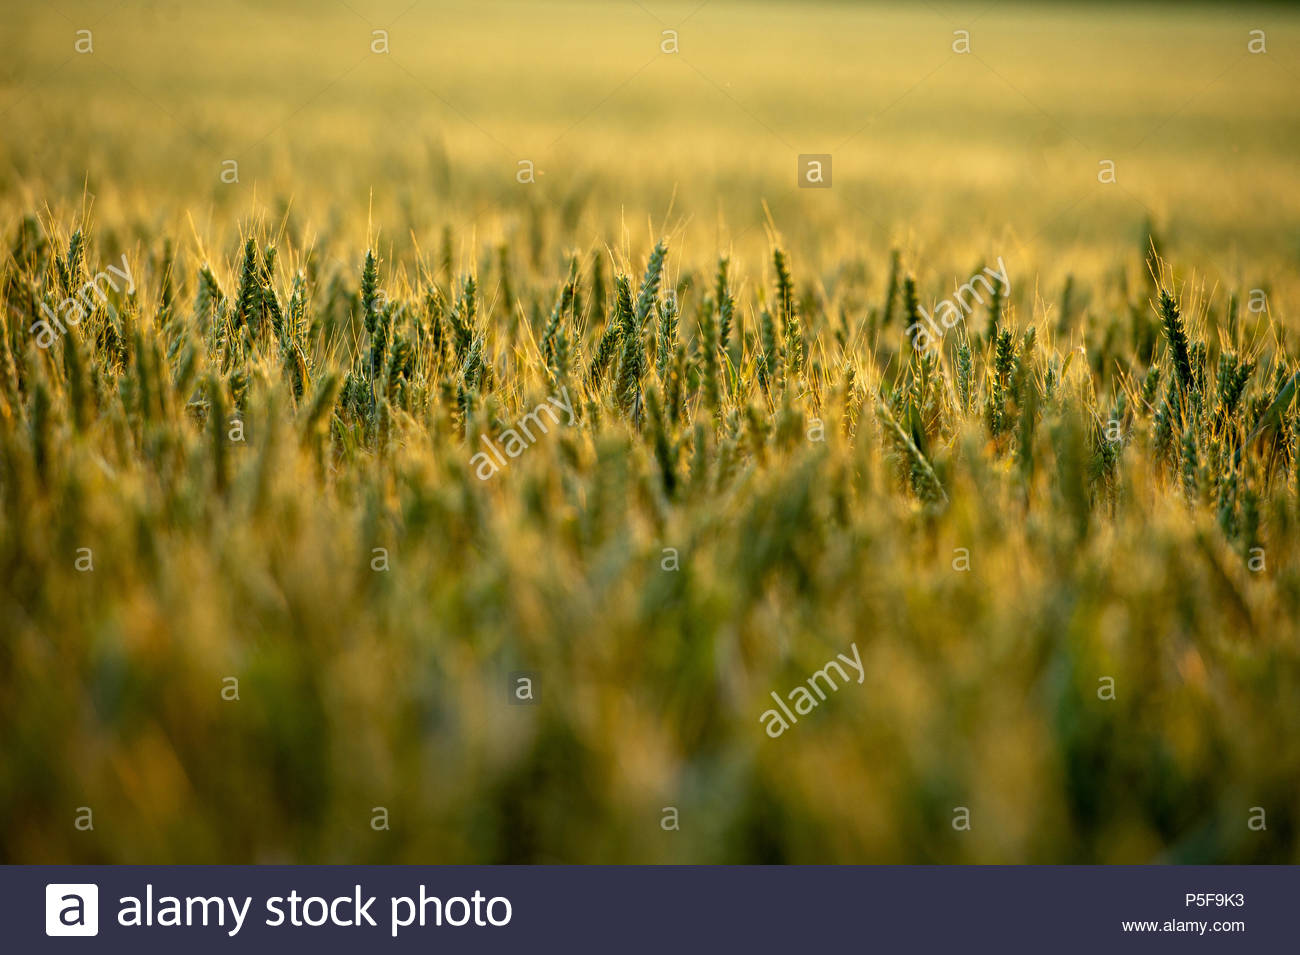 Wheat Field in the golden hour of sunshine in Wiltshire UK - Stock Image